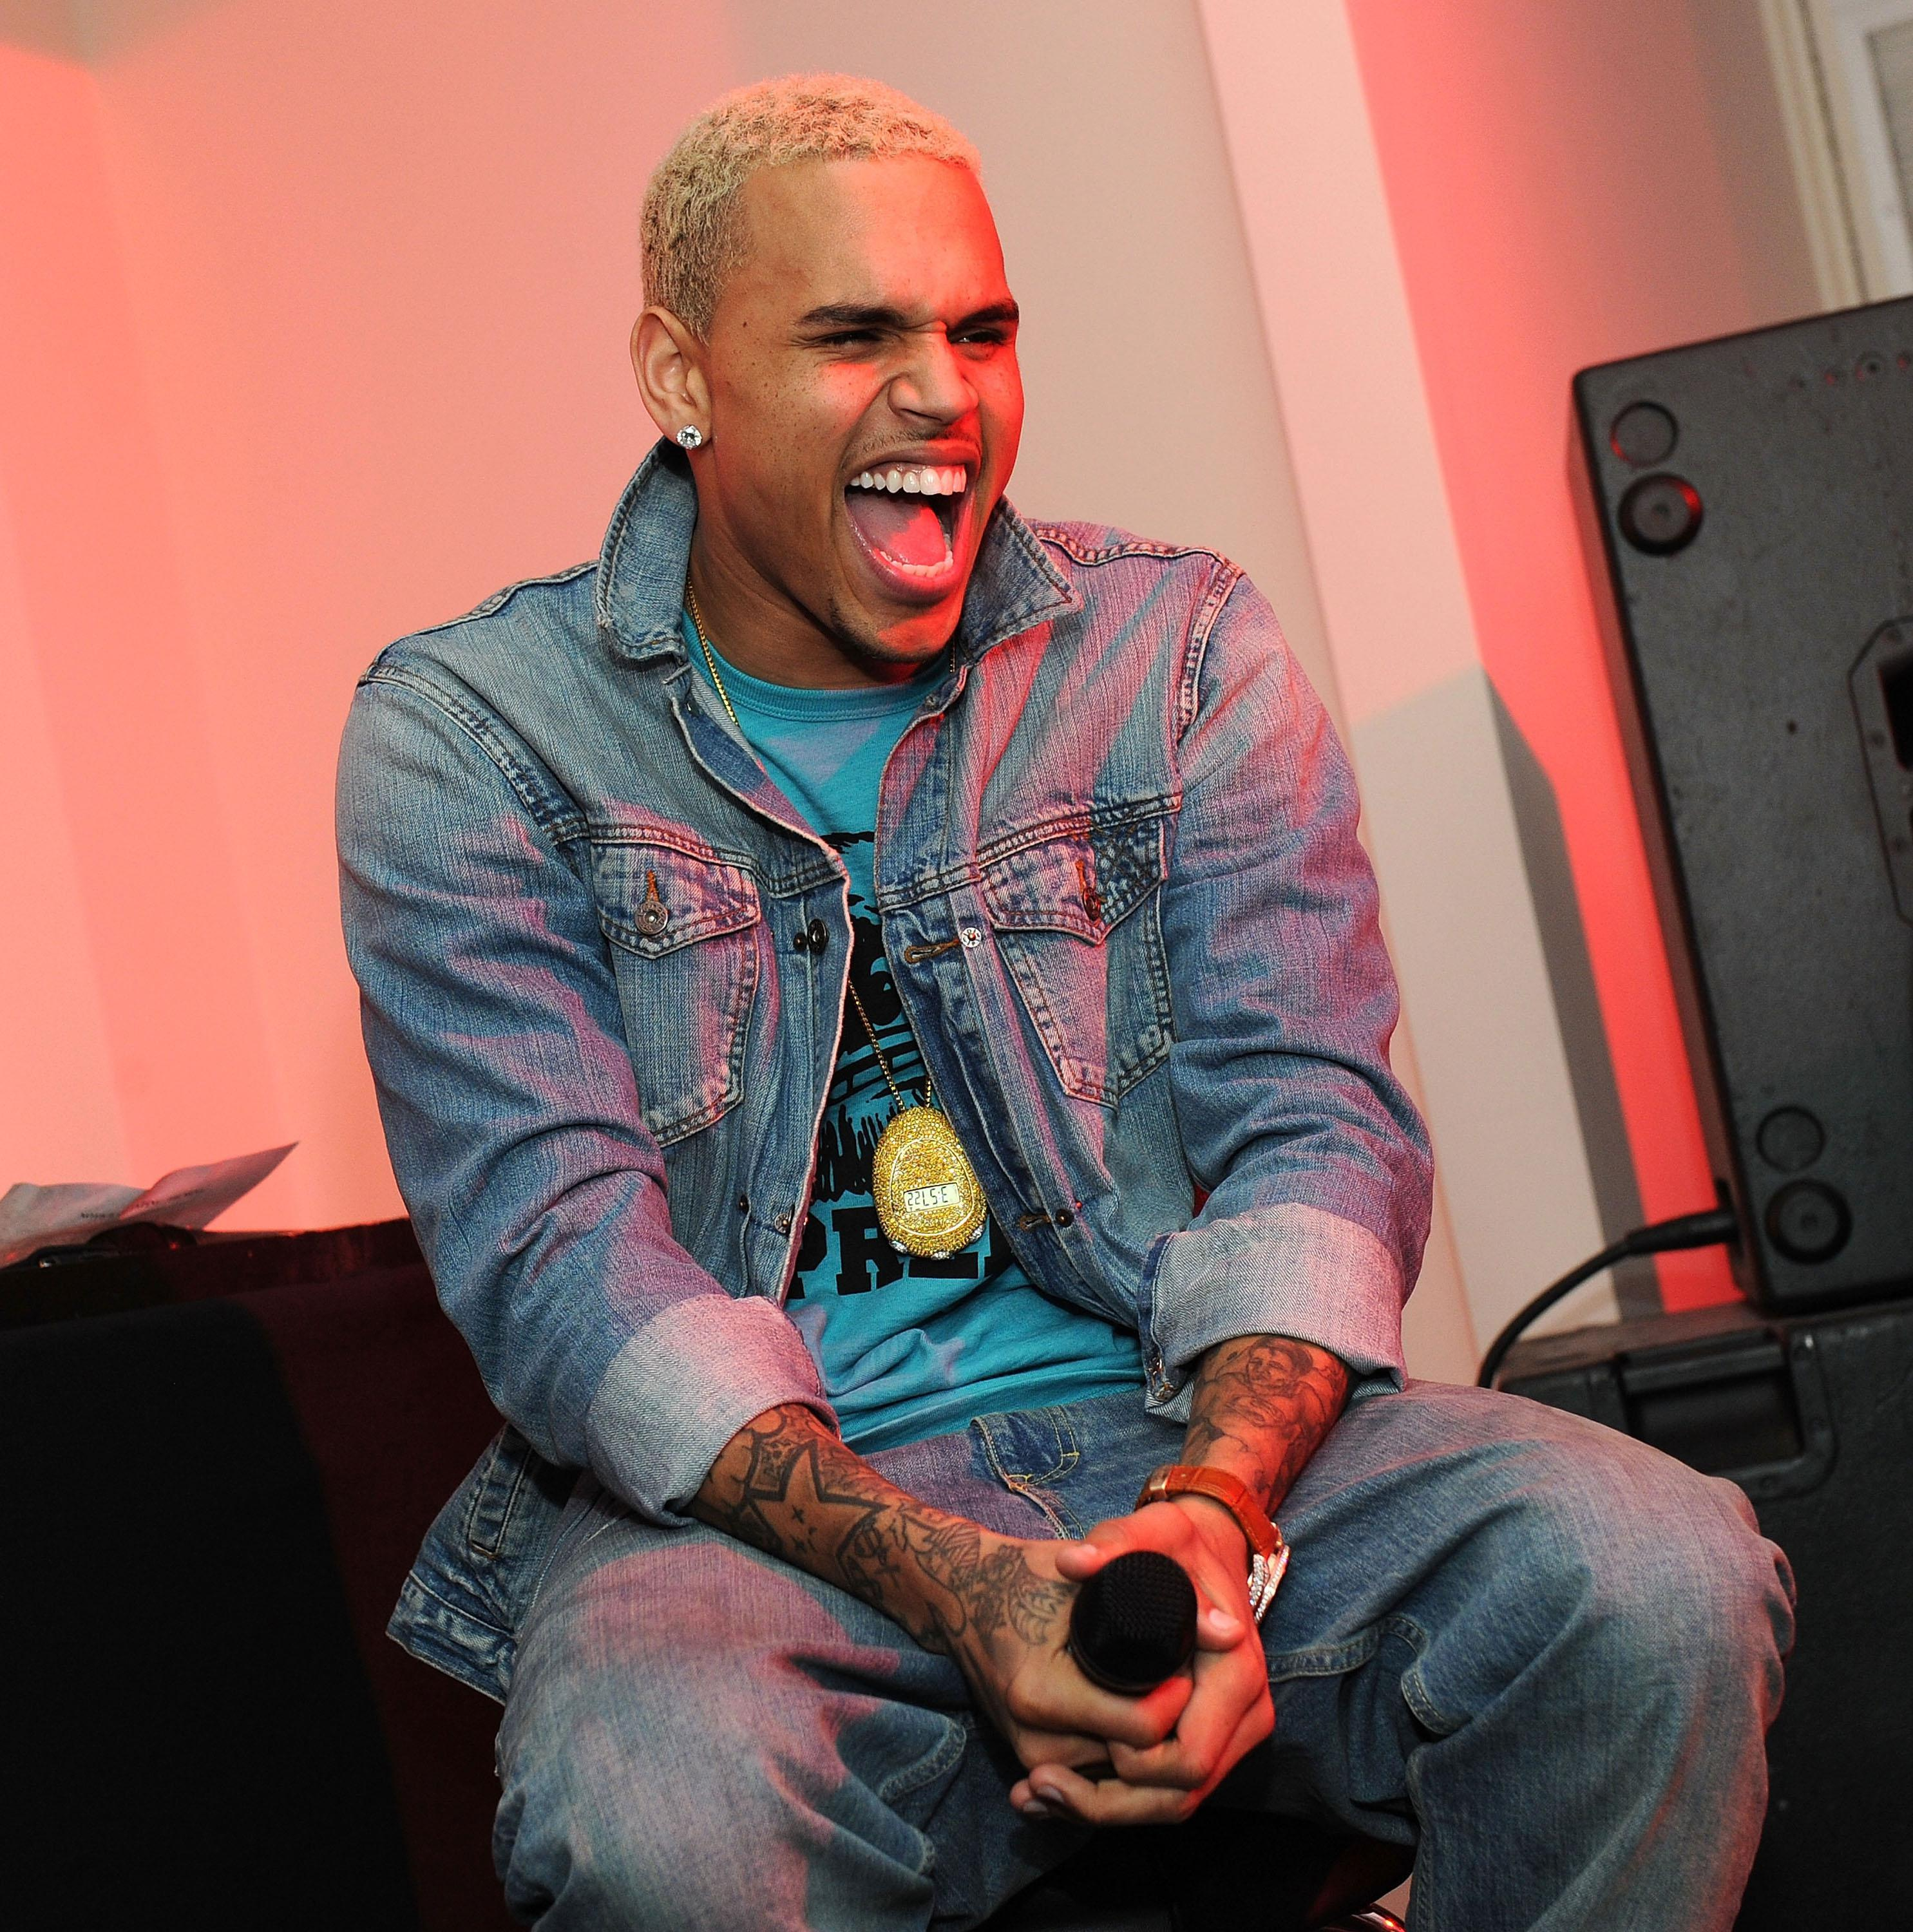 Chris Brown 'Tribute To Team Breezy' F.A.M.E. Secret Listening Session Series - Day 4